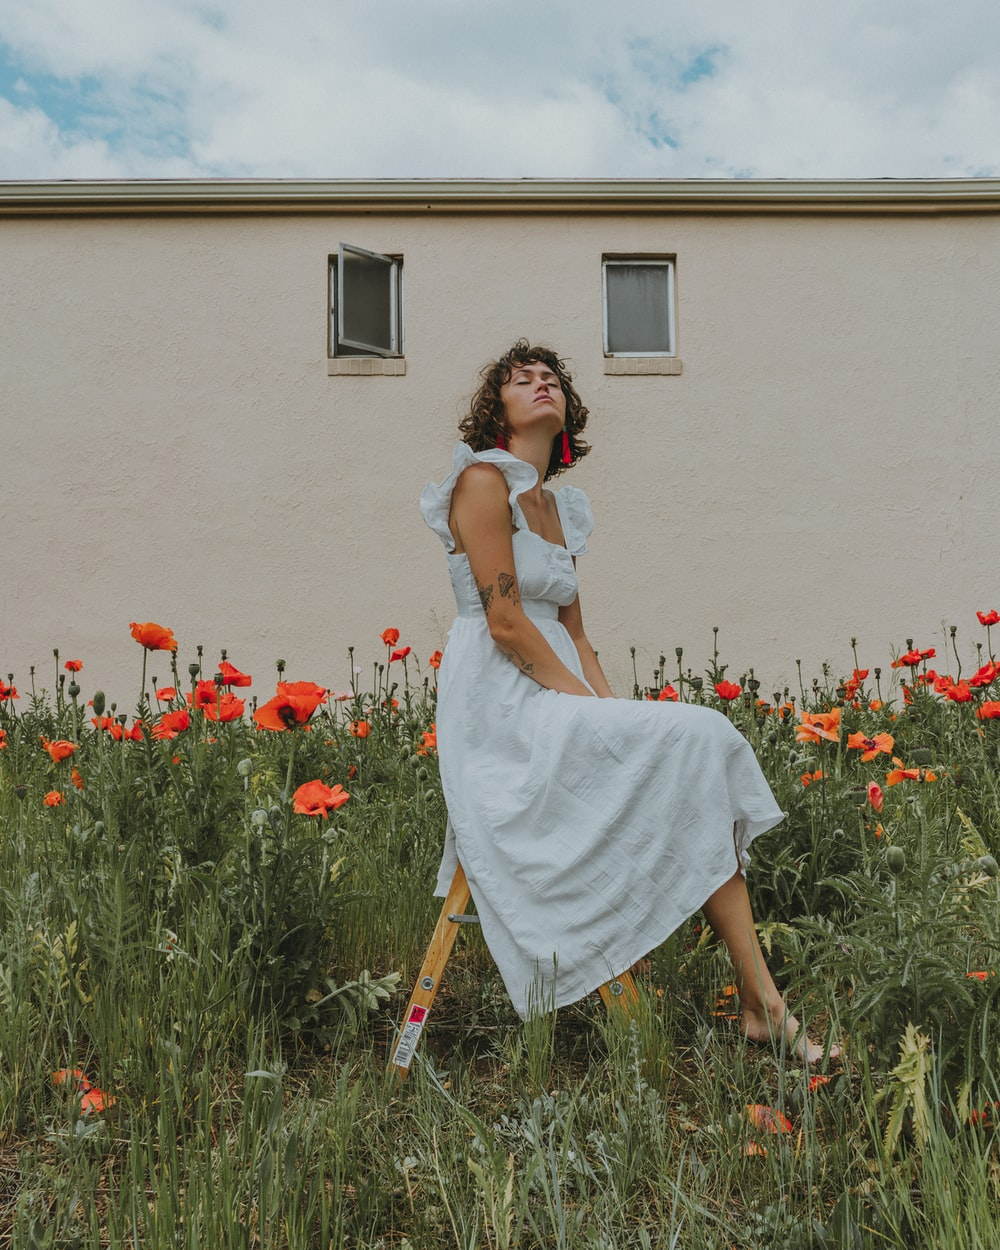 woman in white dress sitting on red flower field during daytime